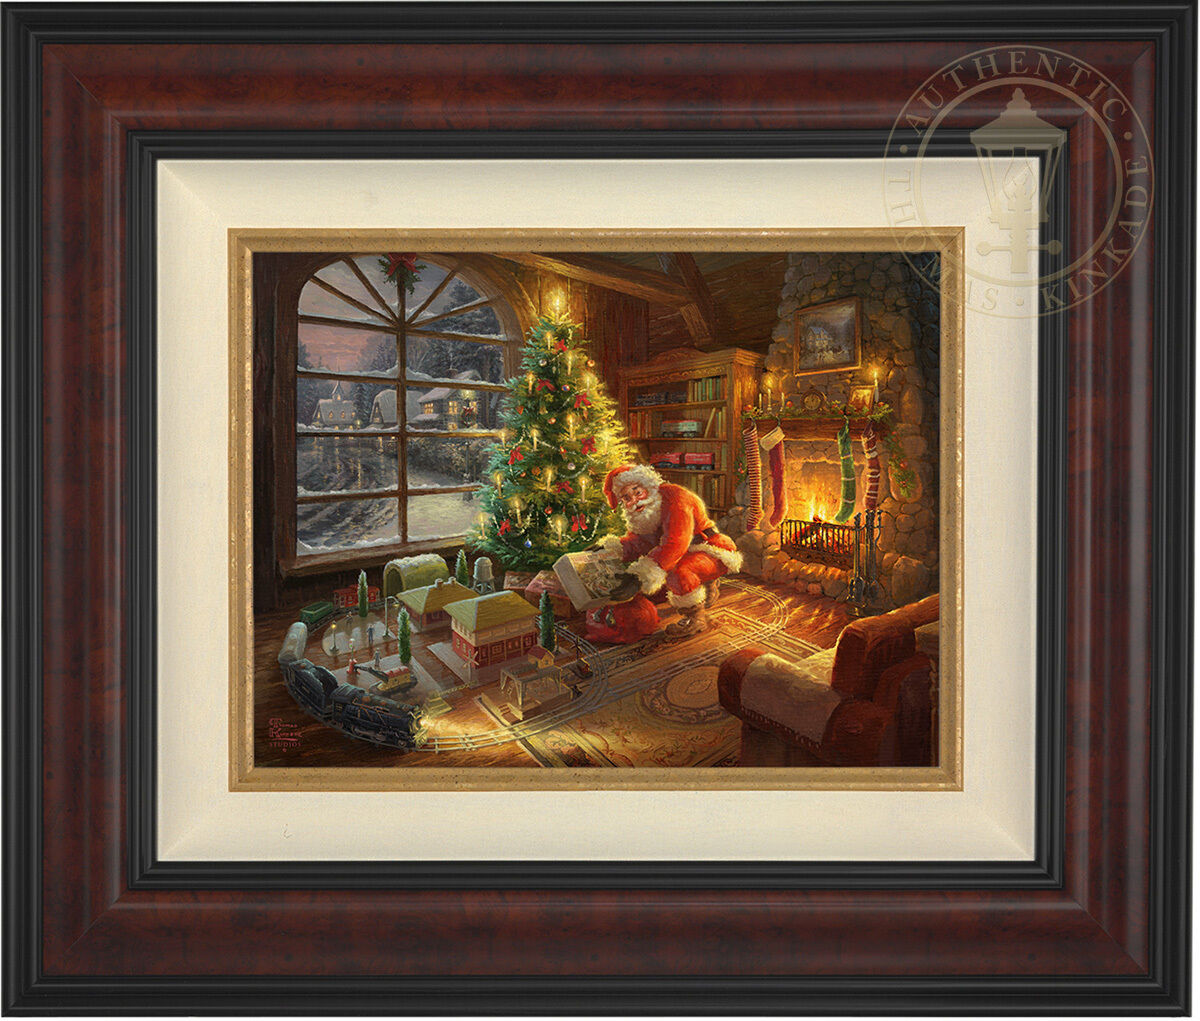 Thomas Kinkade Lionel Santa's Special Delivery 12 x 16 LE S N Canvas Framed